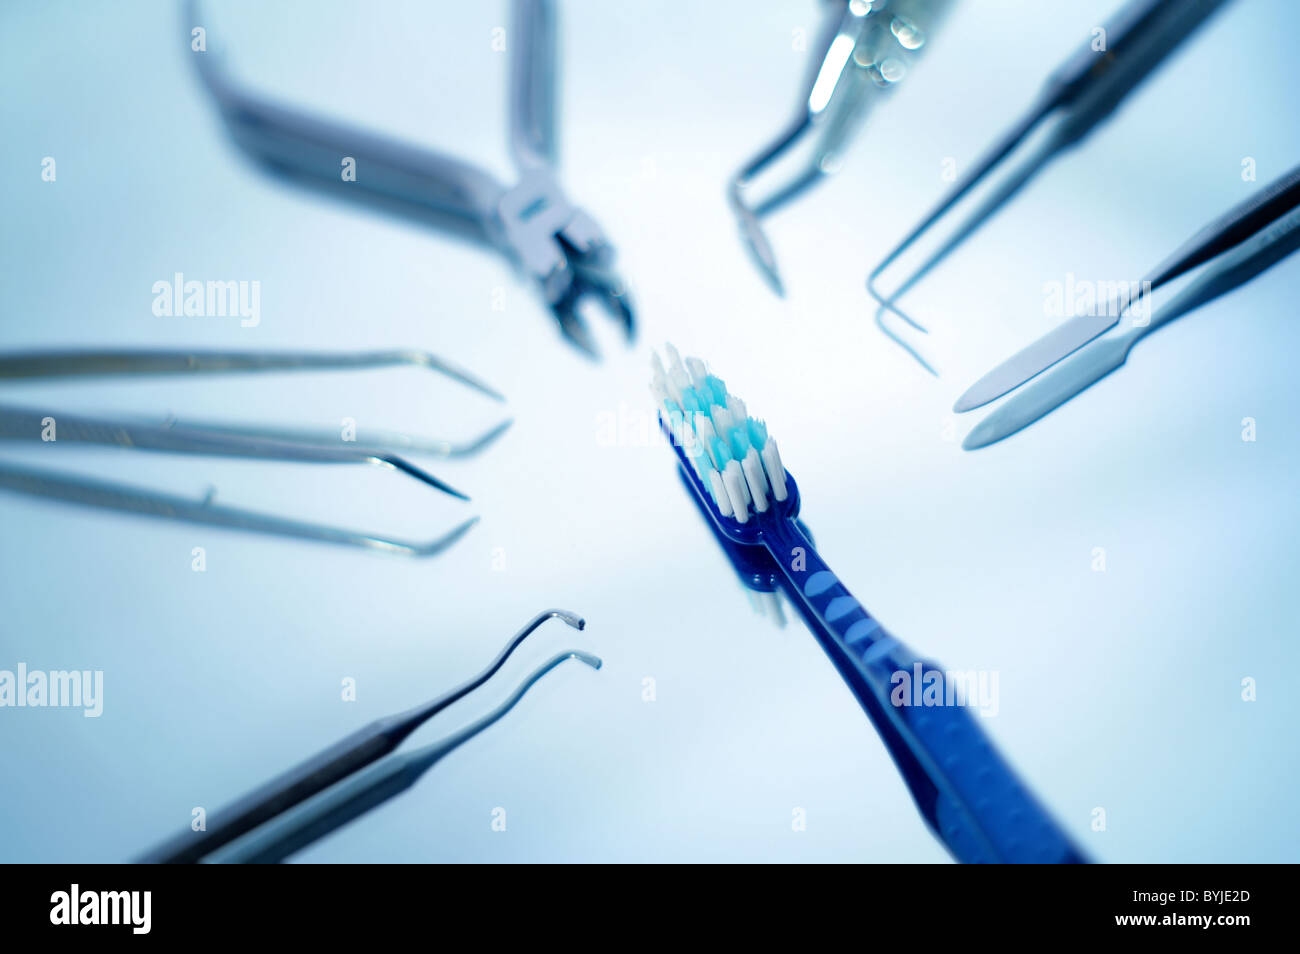 Toothbrush surrounded by dental instruments with very shallow depth of field - Stock Image